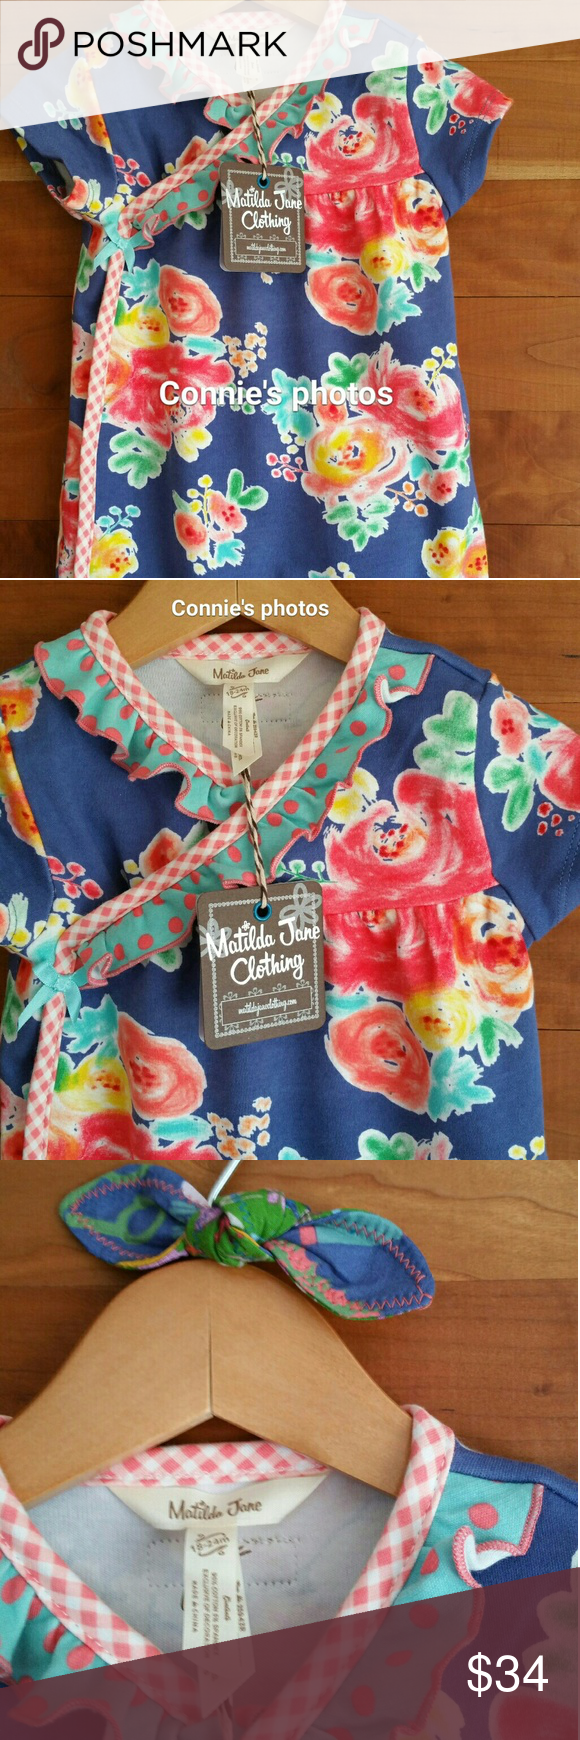 342b383d2 Matilda Jane romper NWT Matilda Jane GOING PLACES romper 18-24 months. From  the